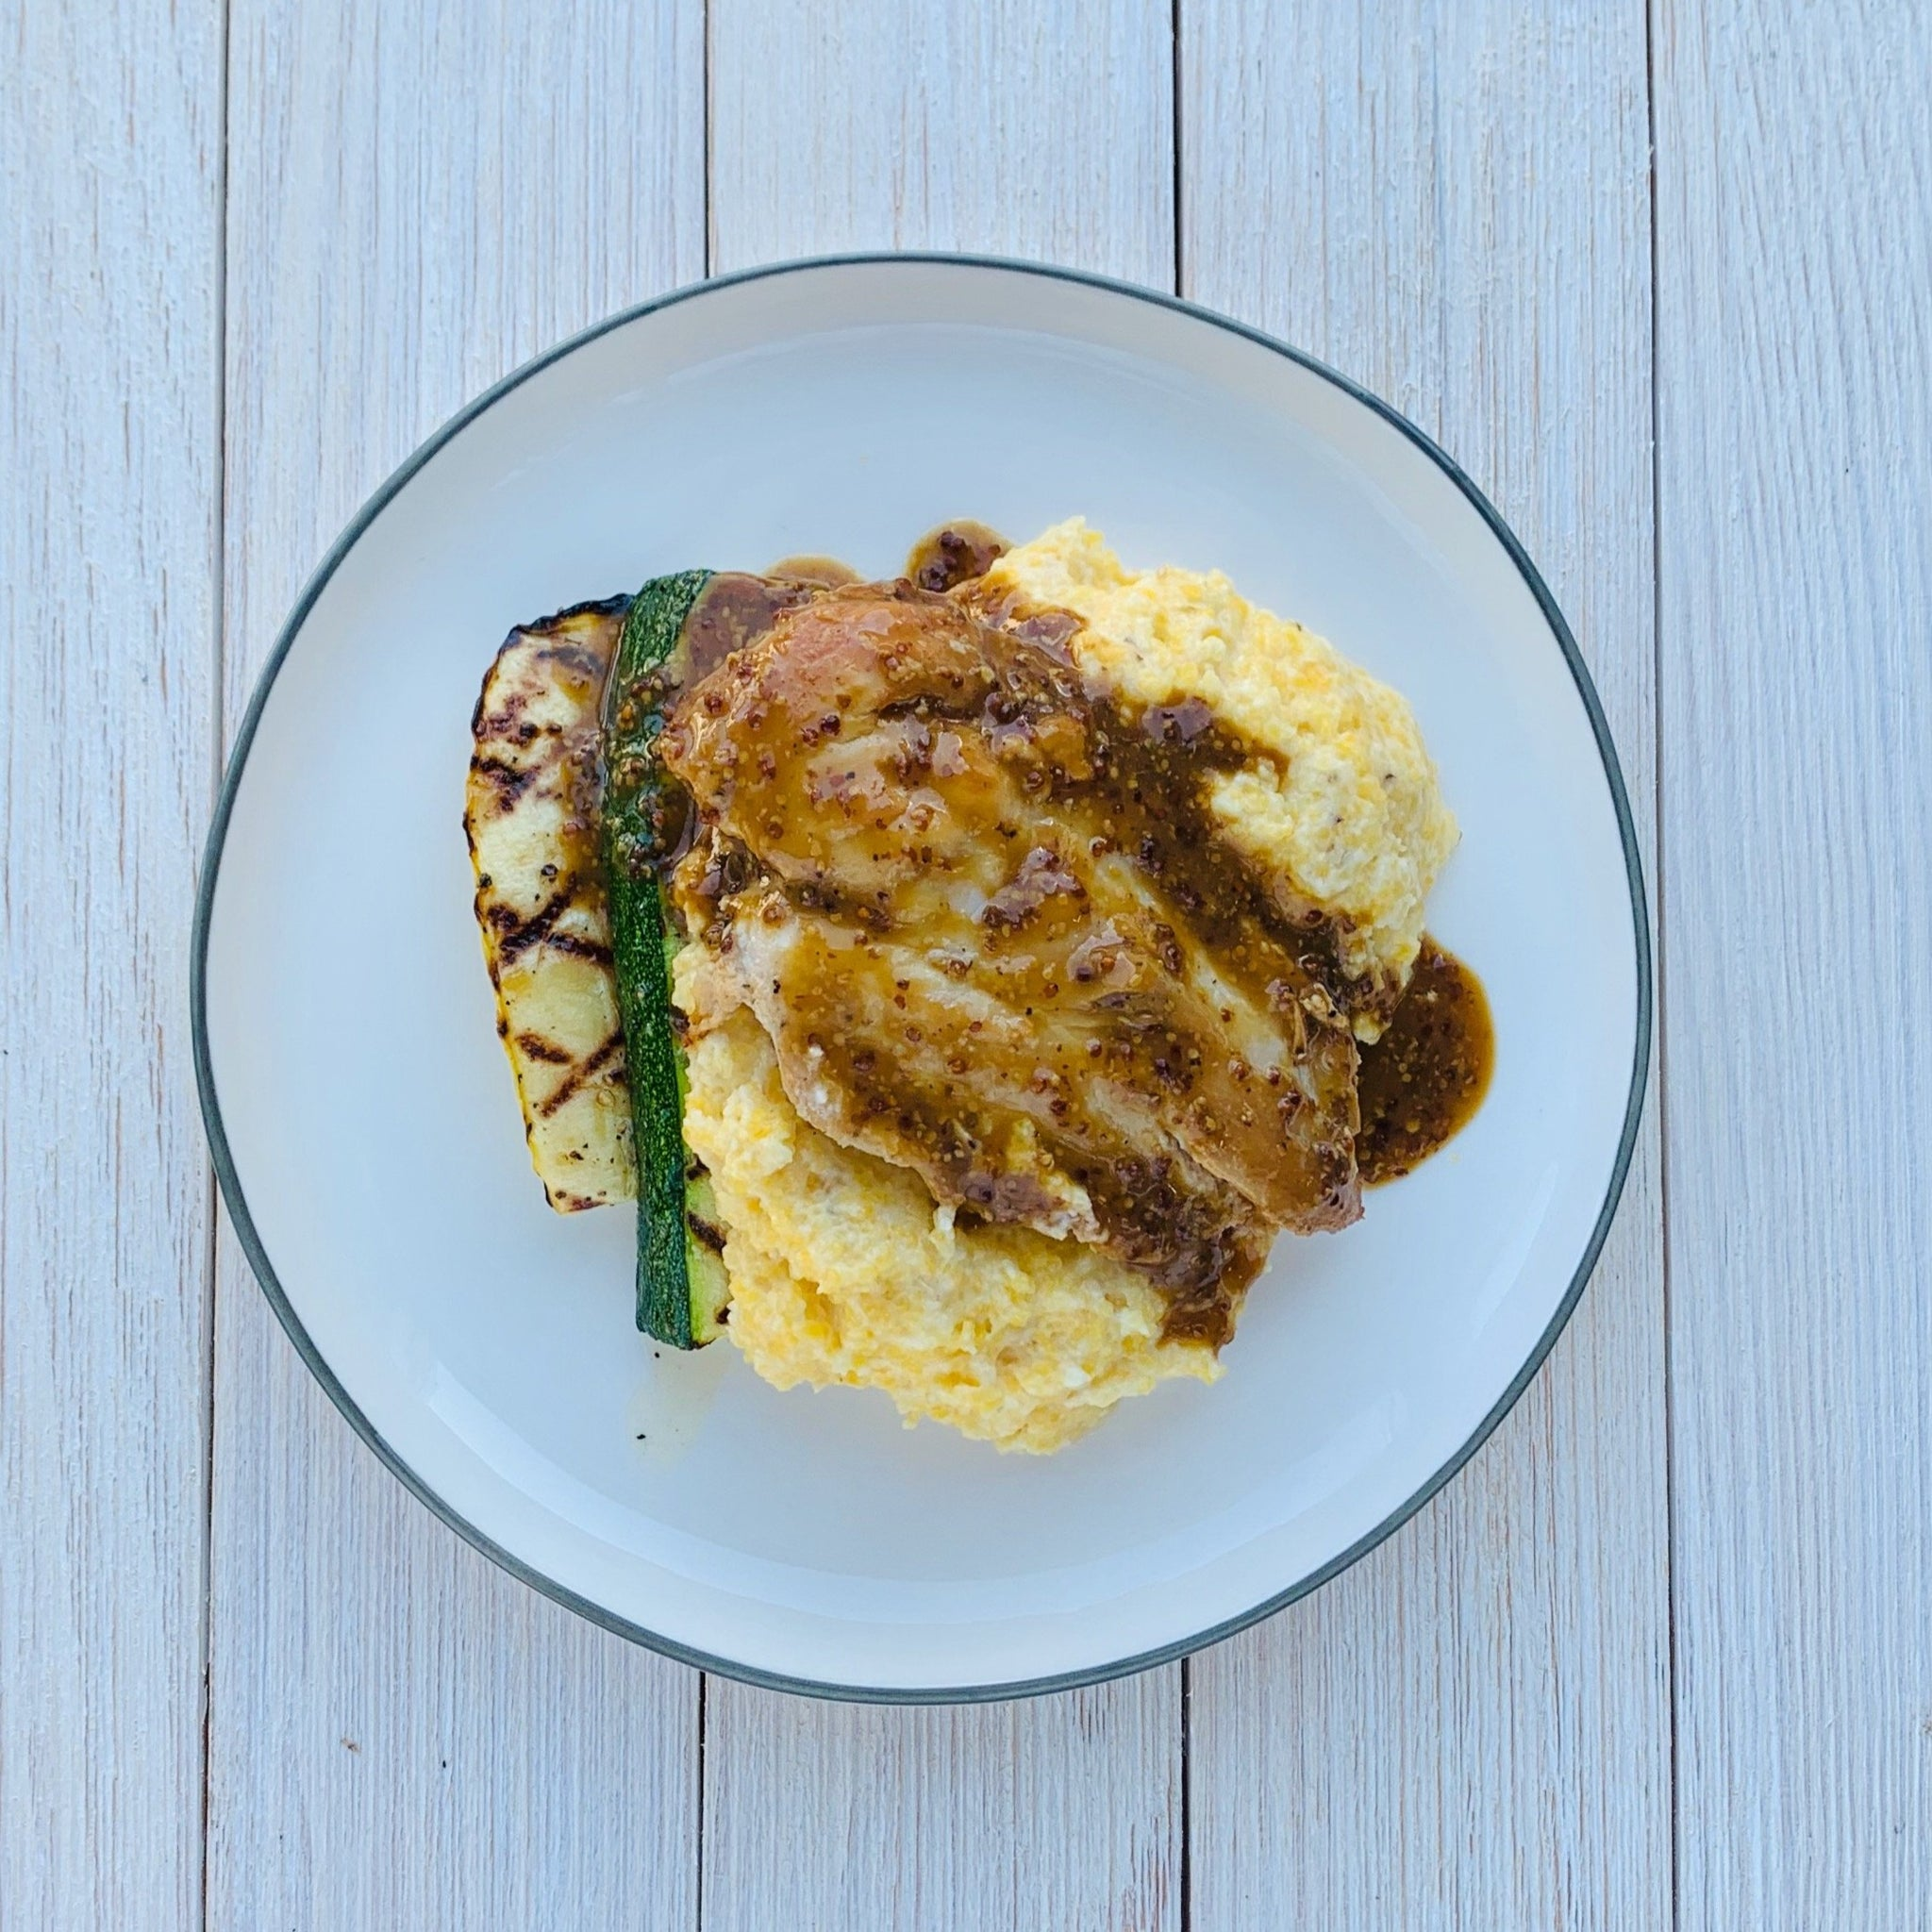 Sorghum Mustard Chicken over Grits with Grilled Squash (GF)